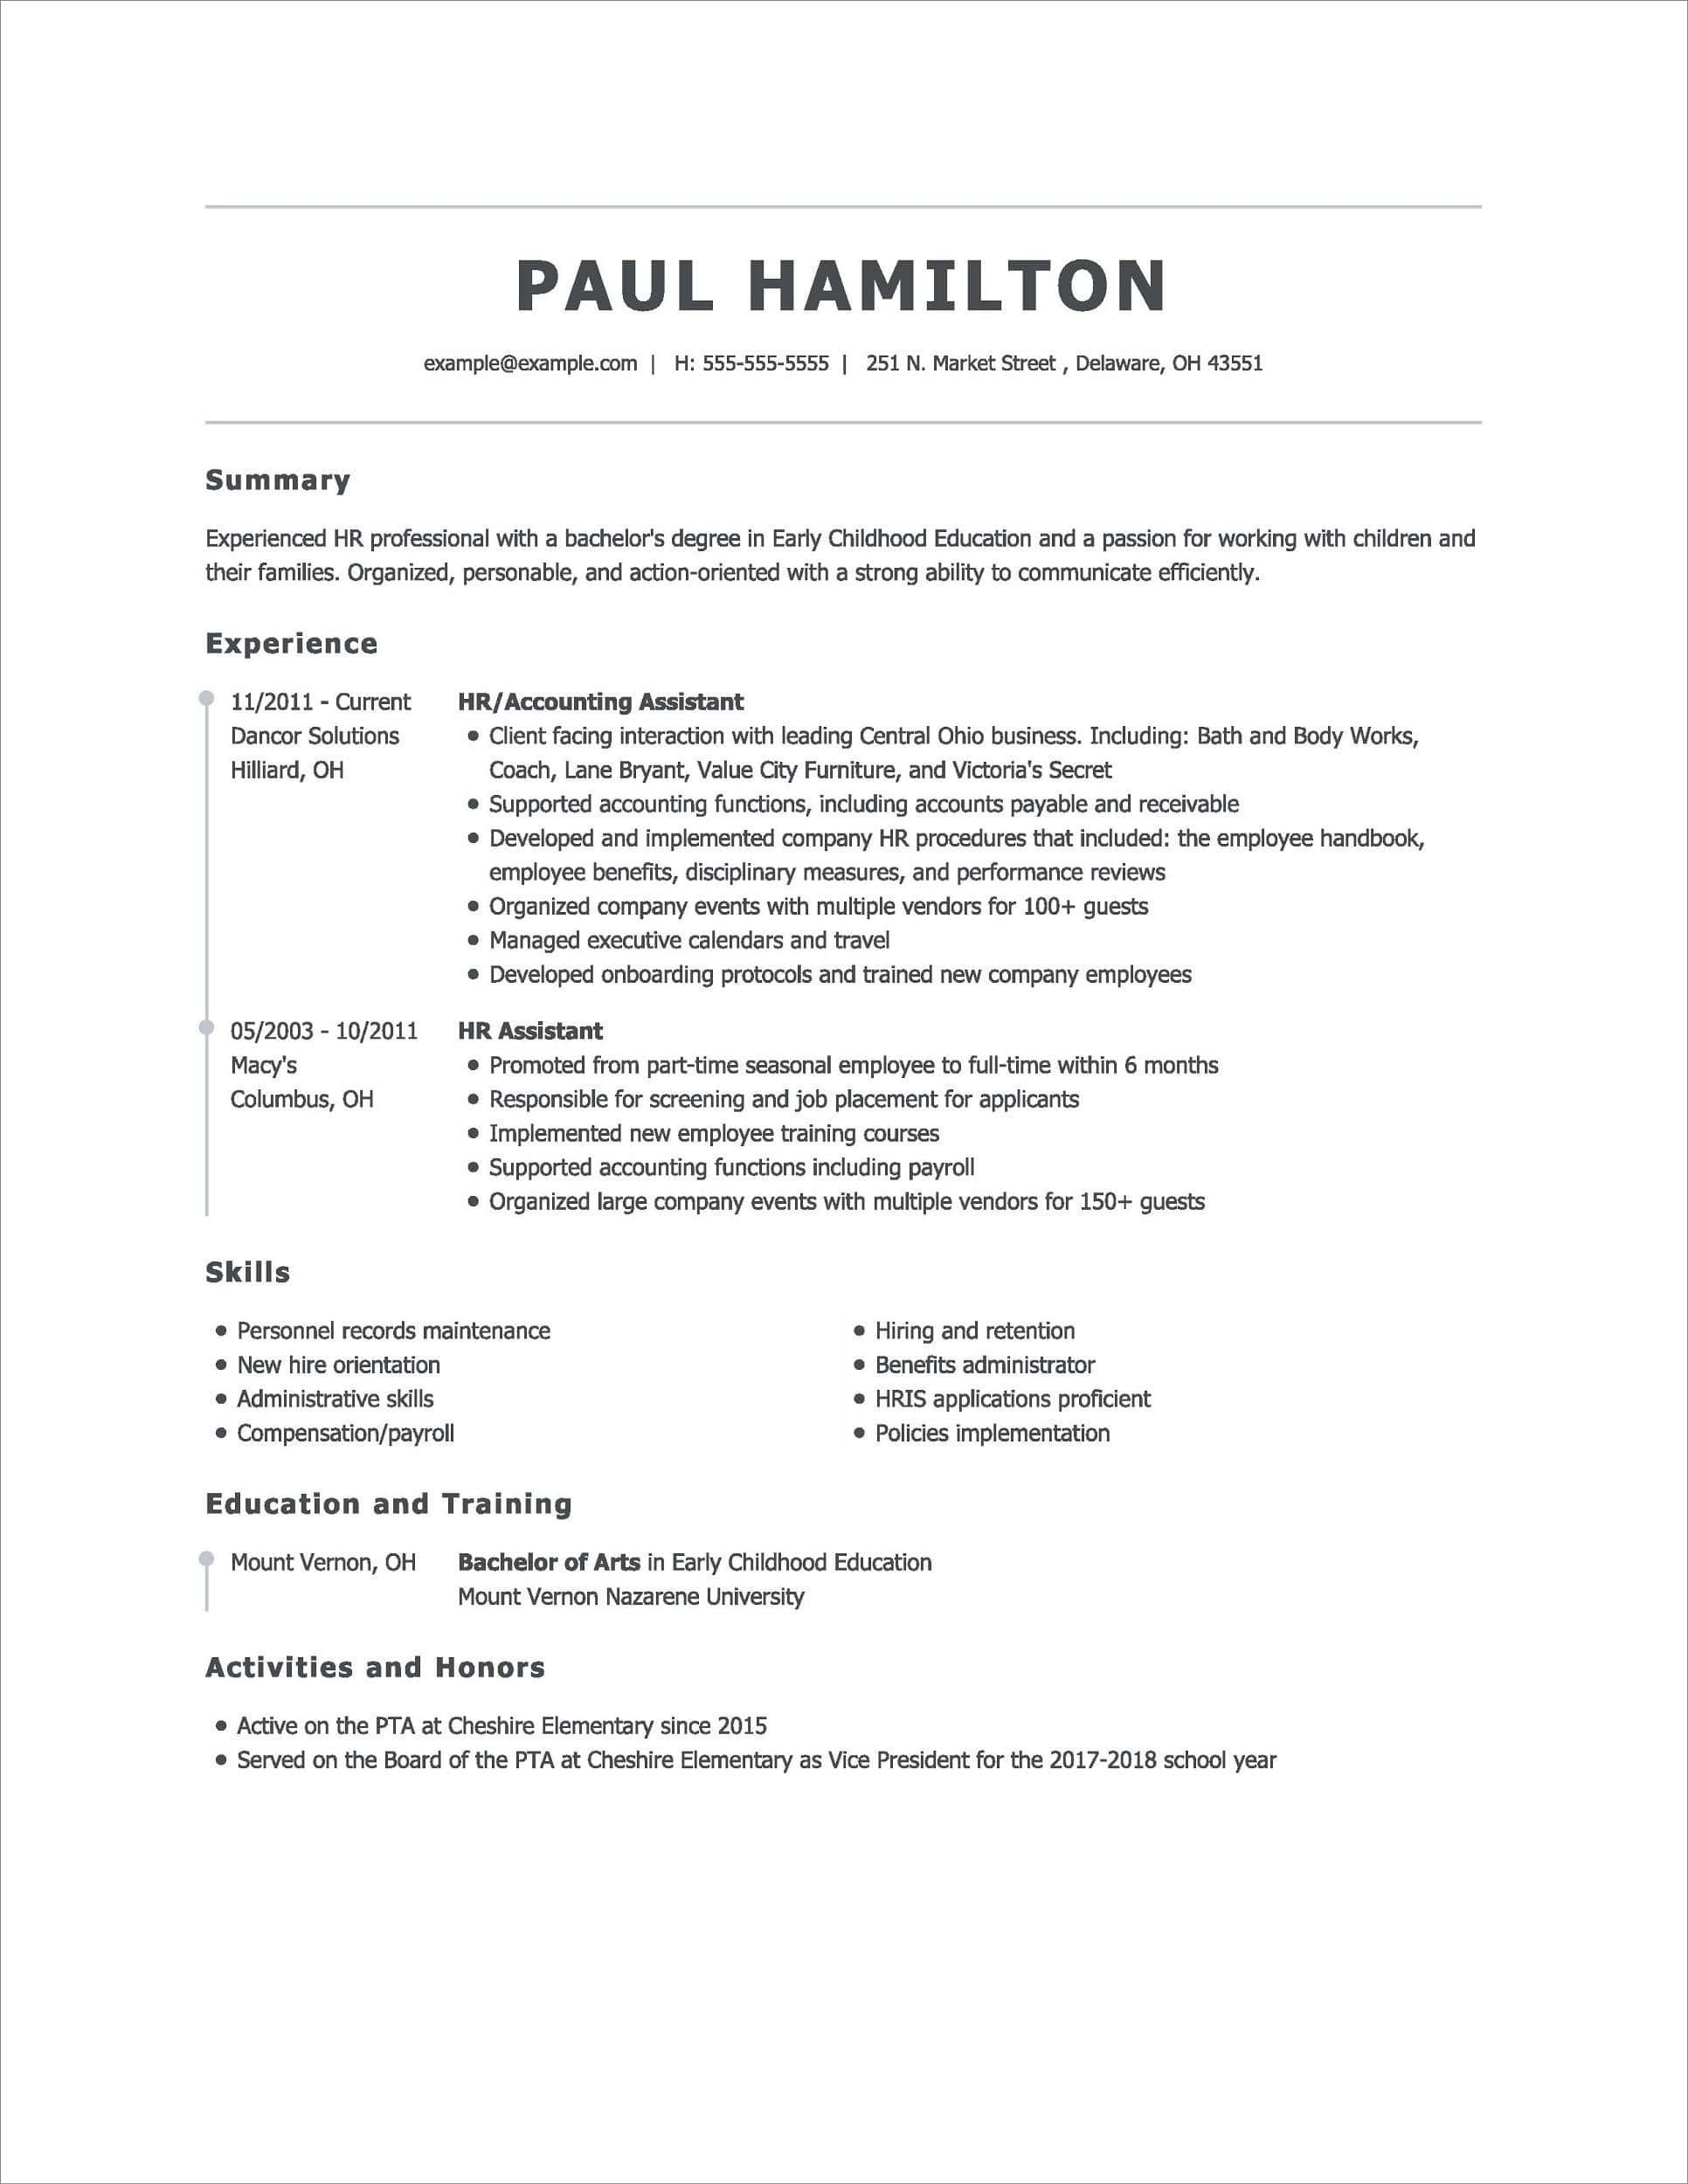 best resume builders free paid features build your mckinsey vocal coach copywriter Resume Build Your Resume Online